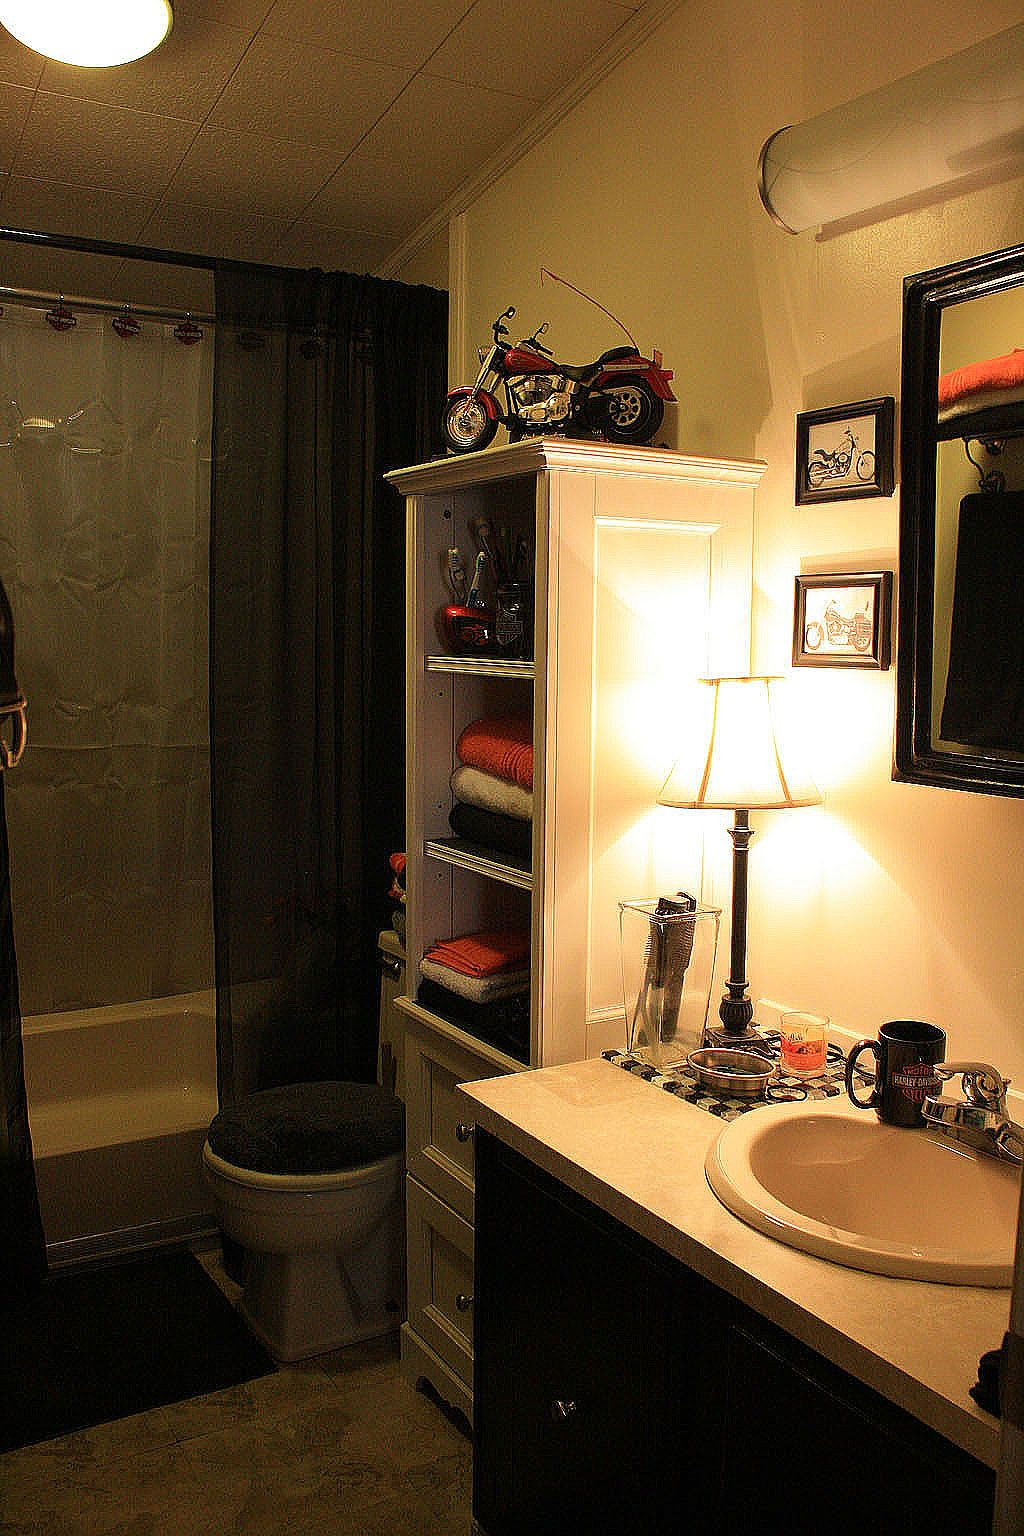 Charmant Harley Davidson Bathroom On A Budget. Even The Light Fixtures Were On  Clearance And Rocked. Clean Lines And A Tribal Etched Glass On The Overhead  Light.